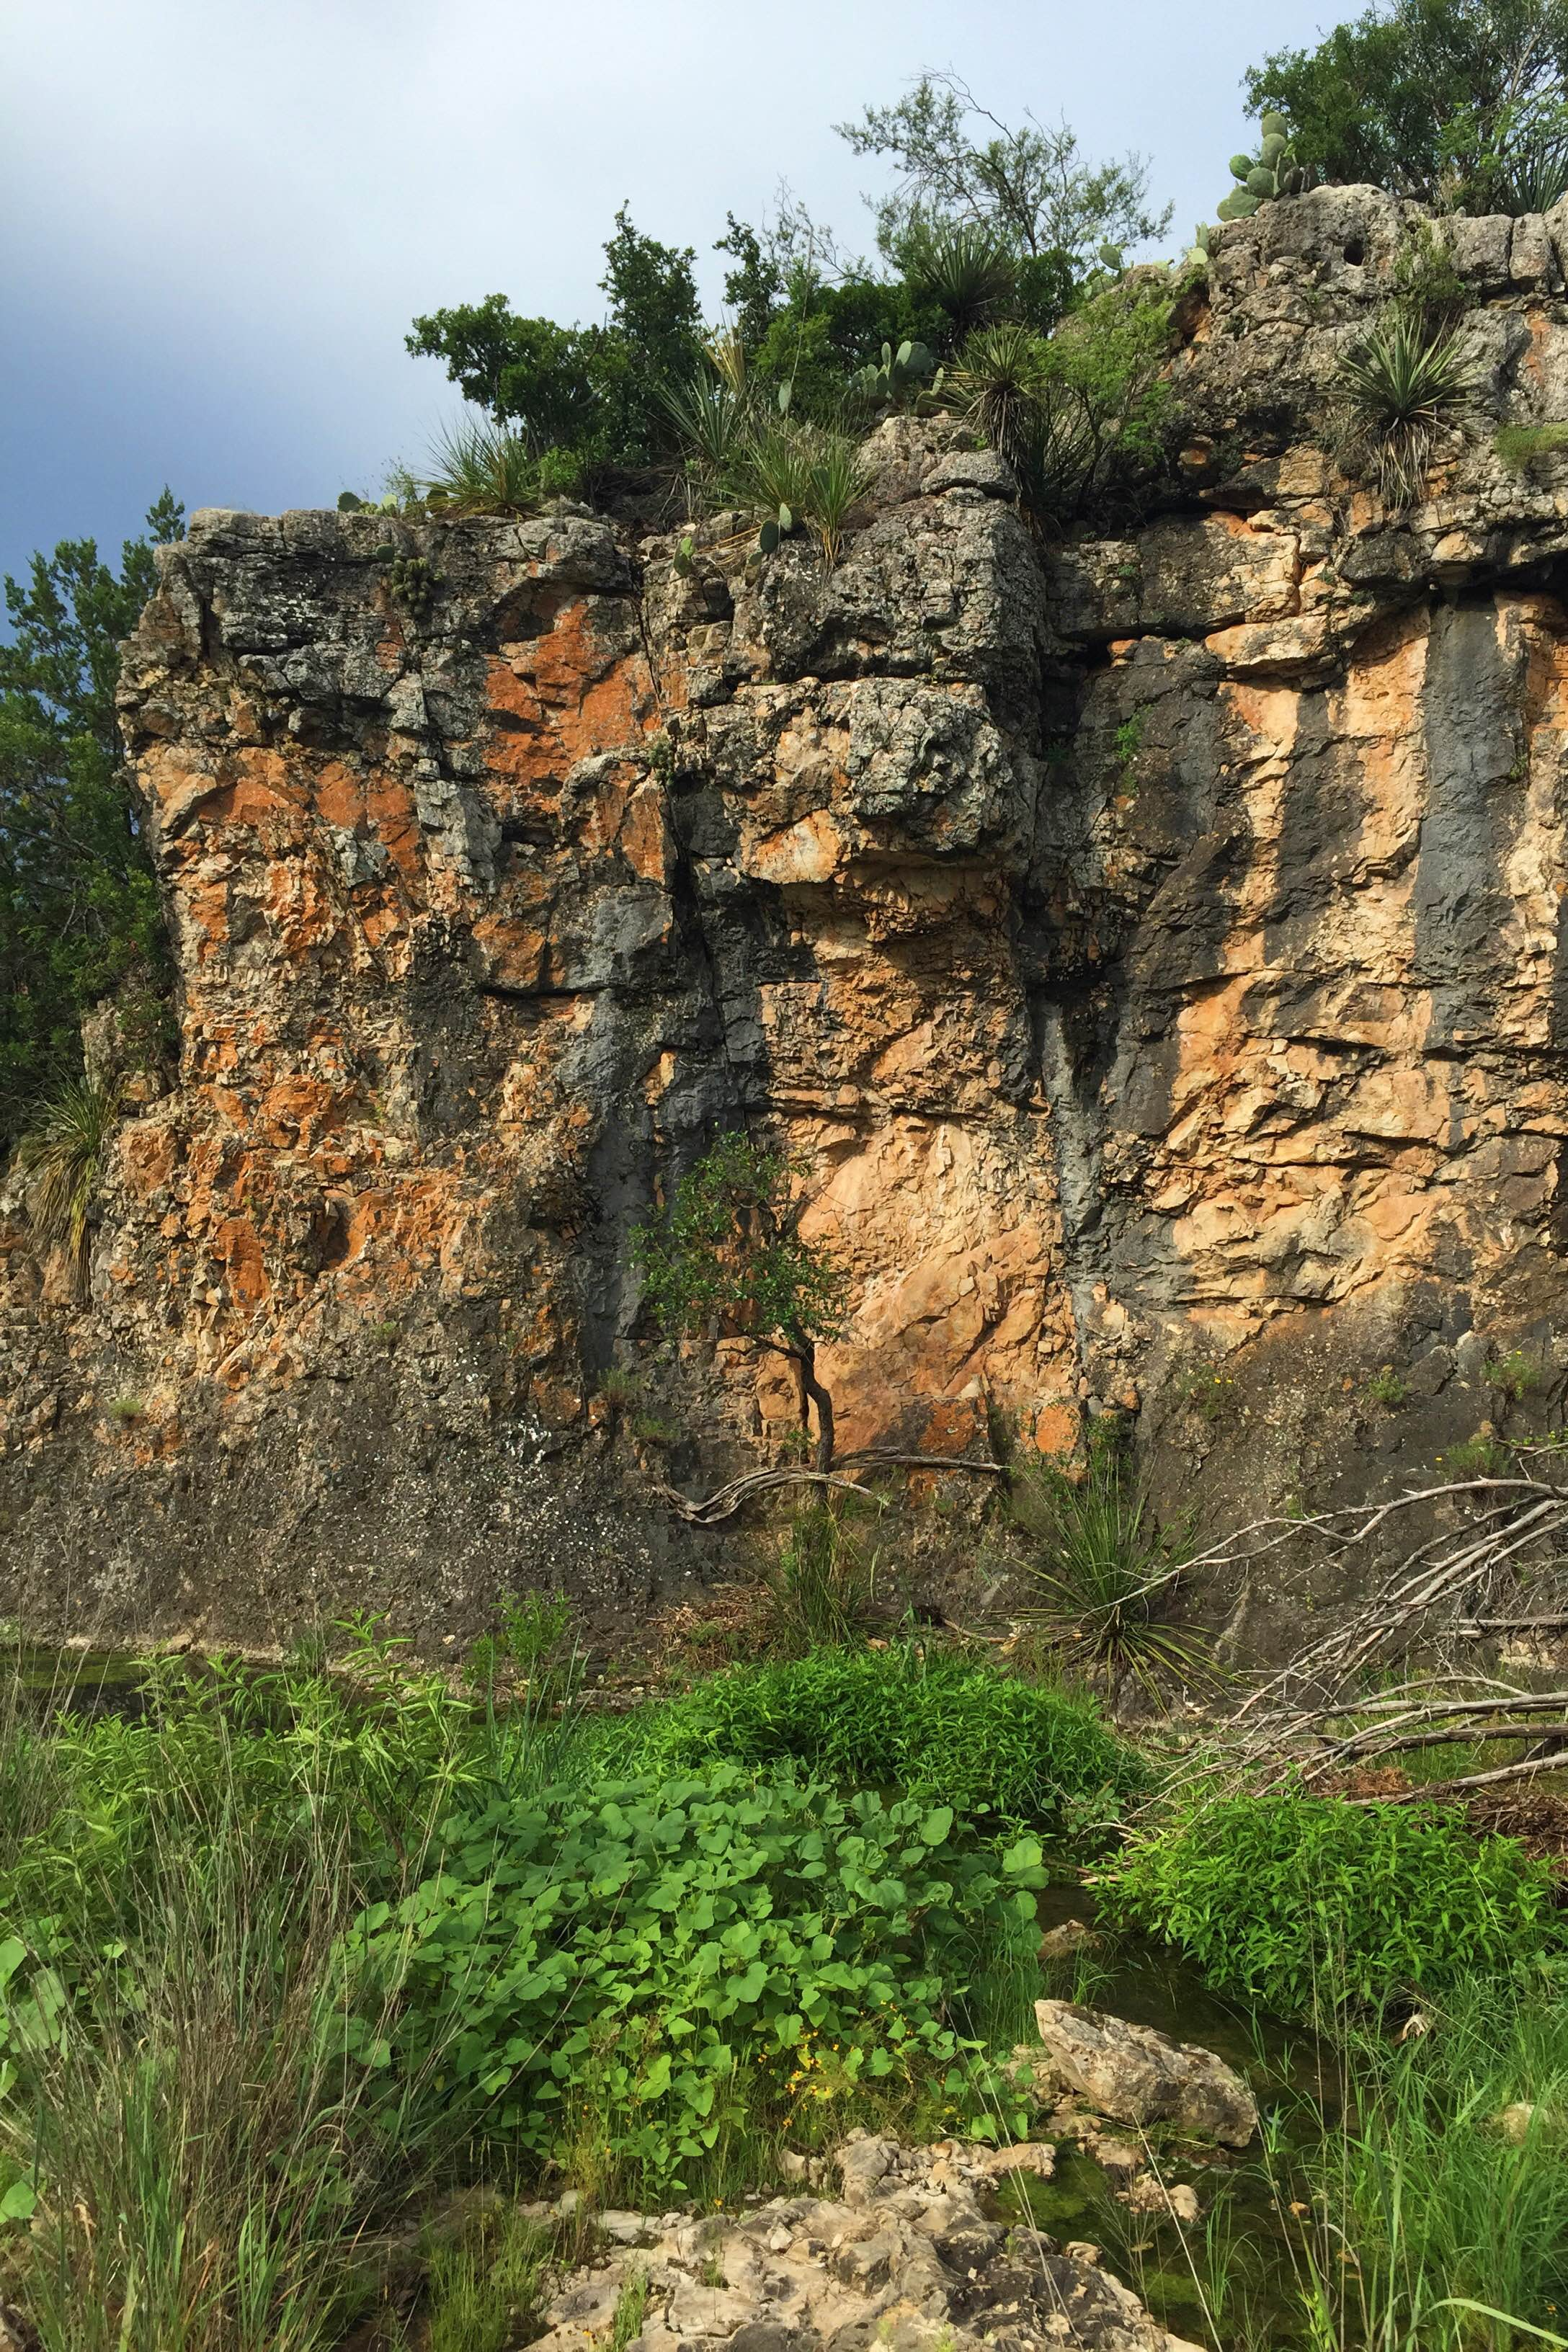 Limestone outcropping with a spring in the foreground.